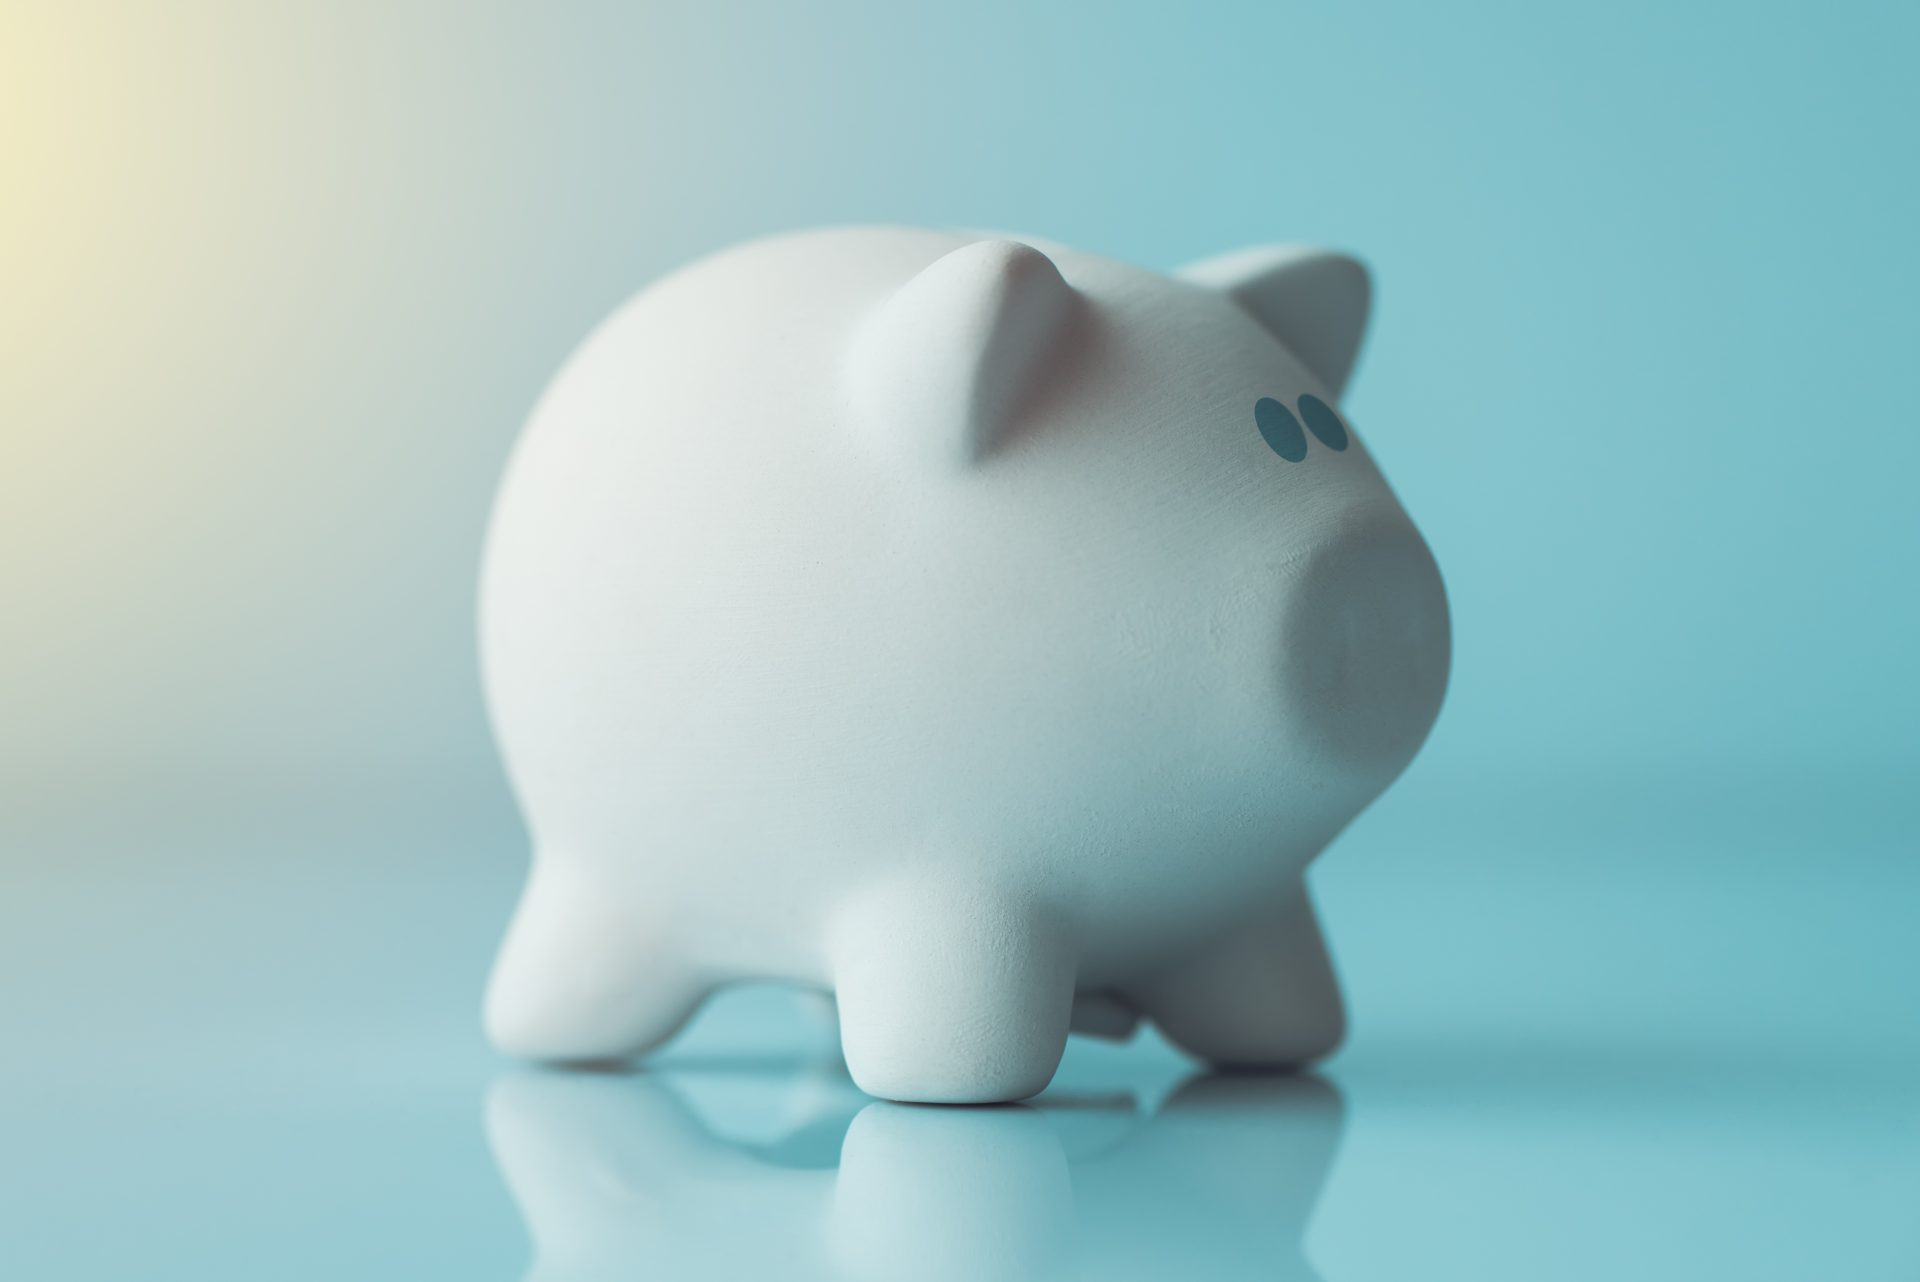 piggy coin bank, investments, banking concept